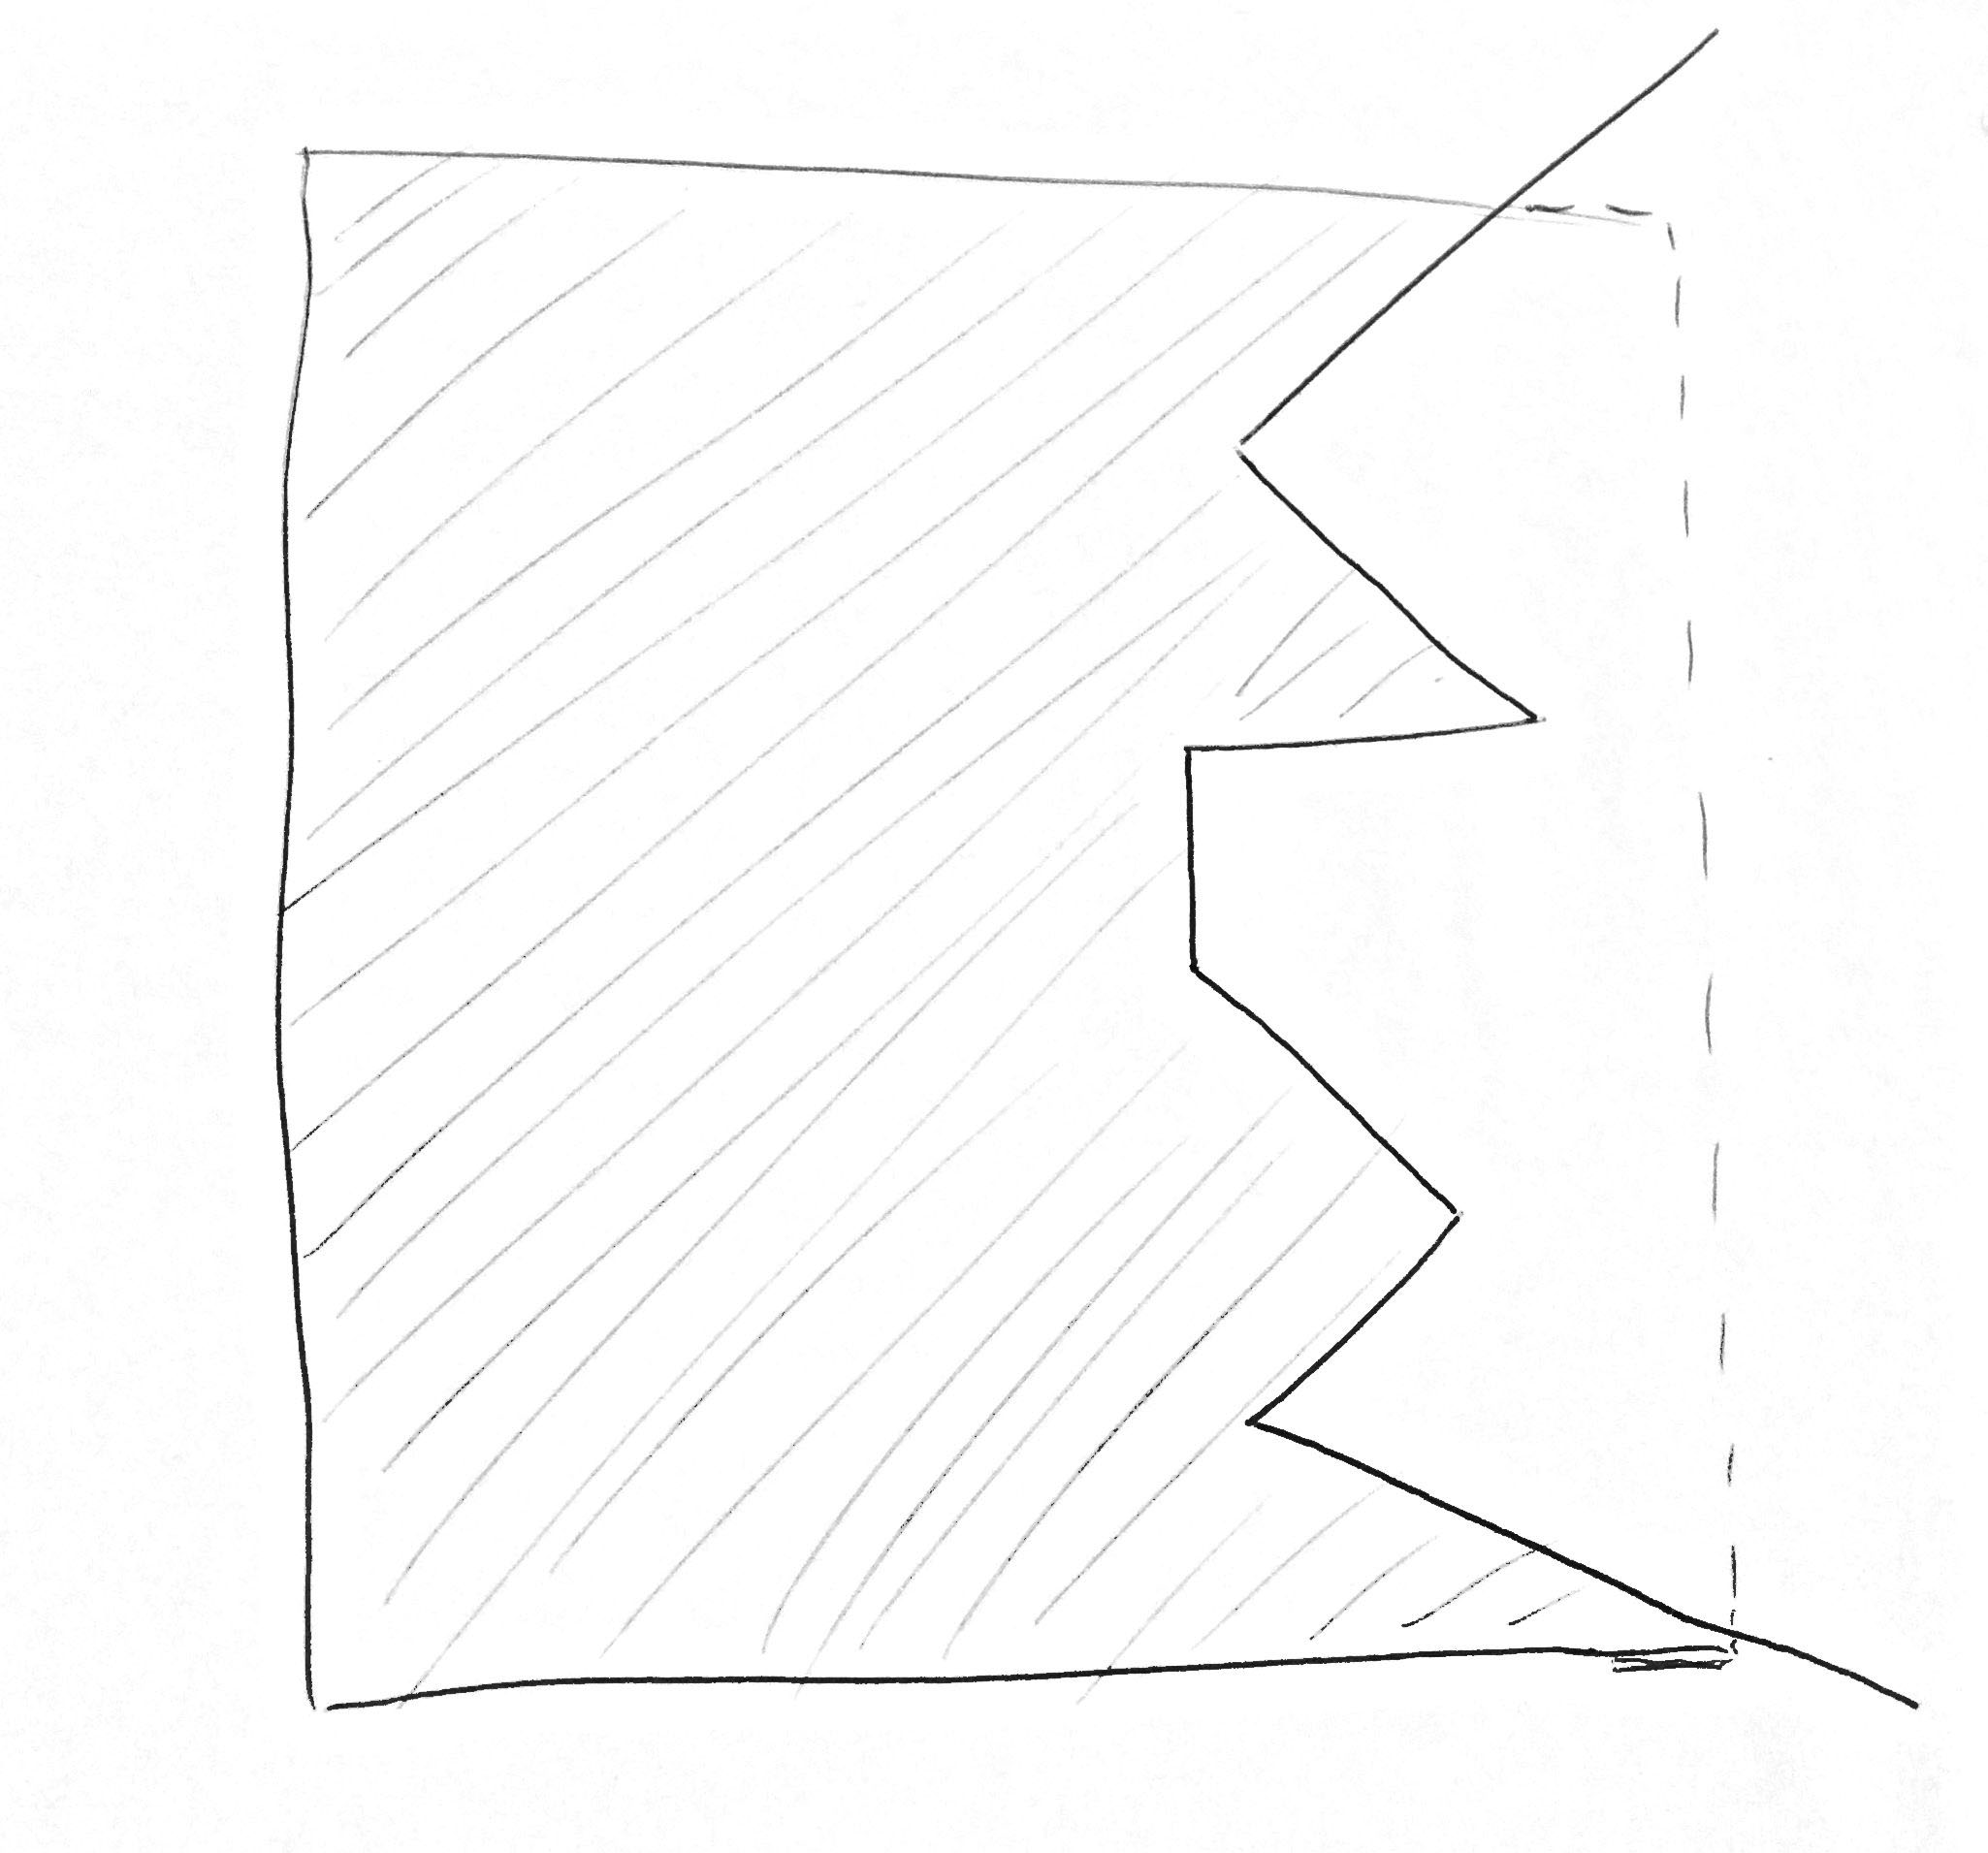 Example Of My Basic Case As Seed From A Side View, I Wan't To Find Out The  Inside Volume Of The Cube: